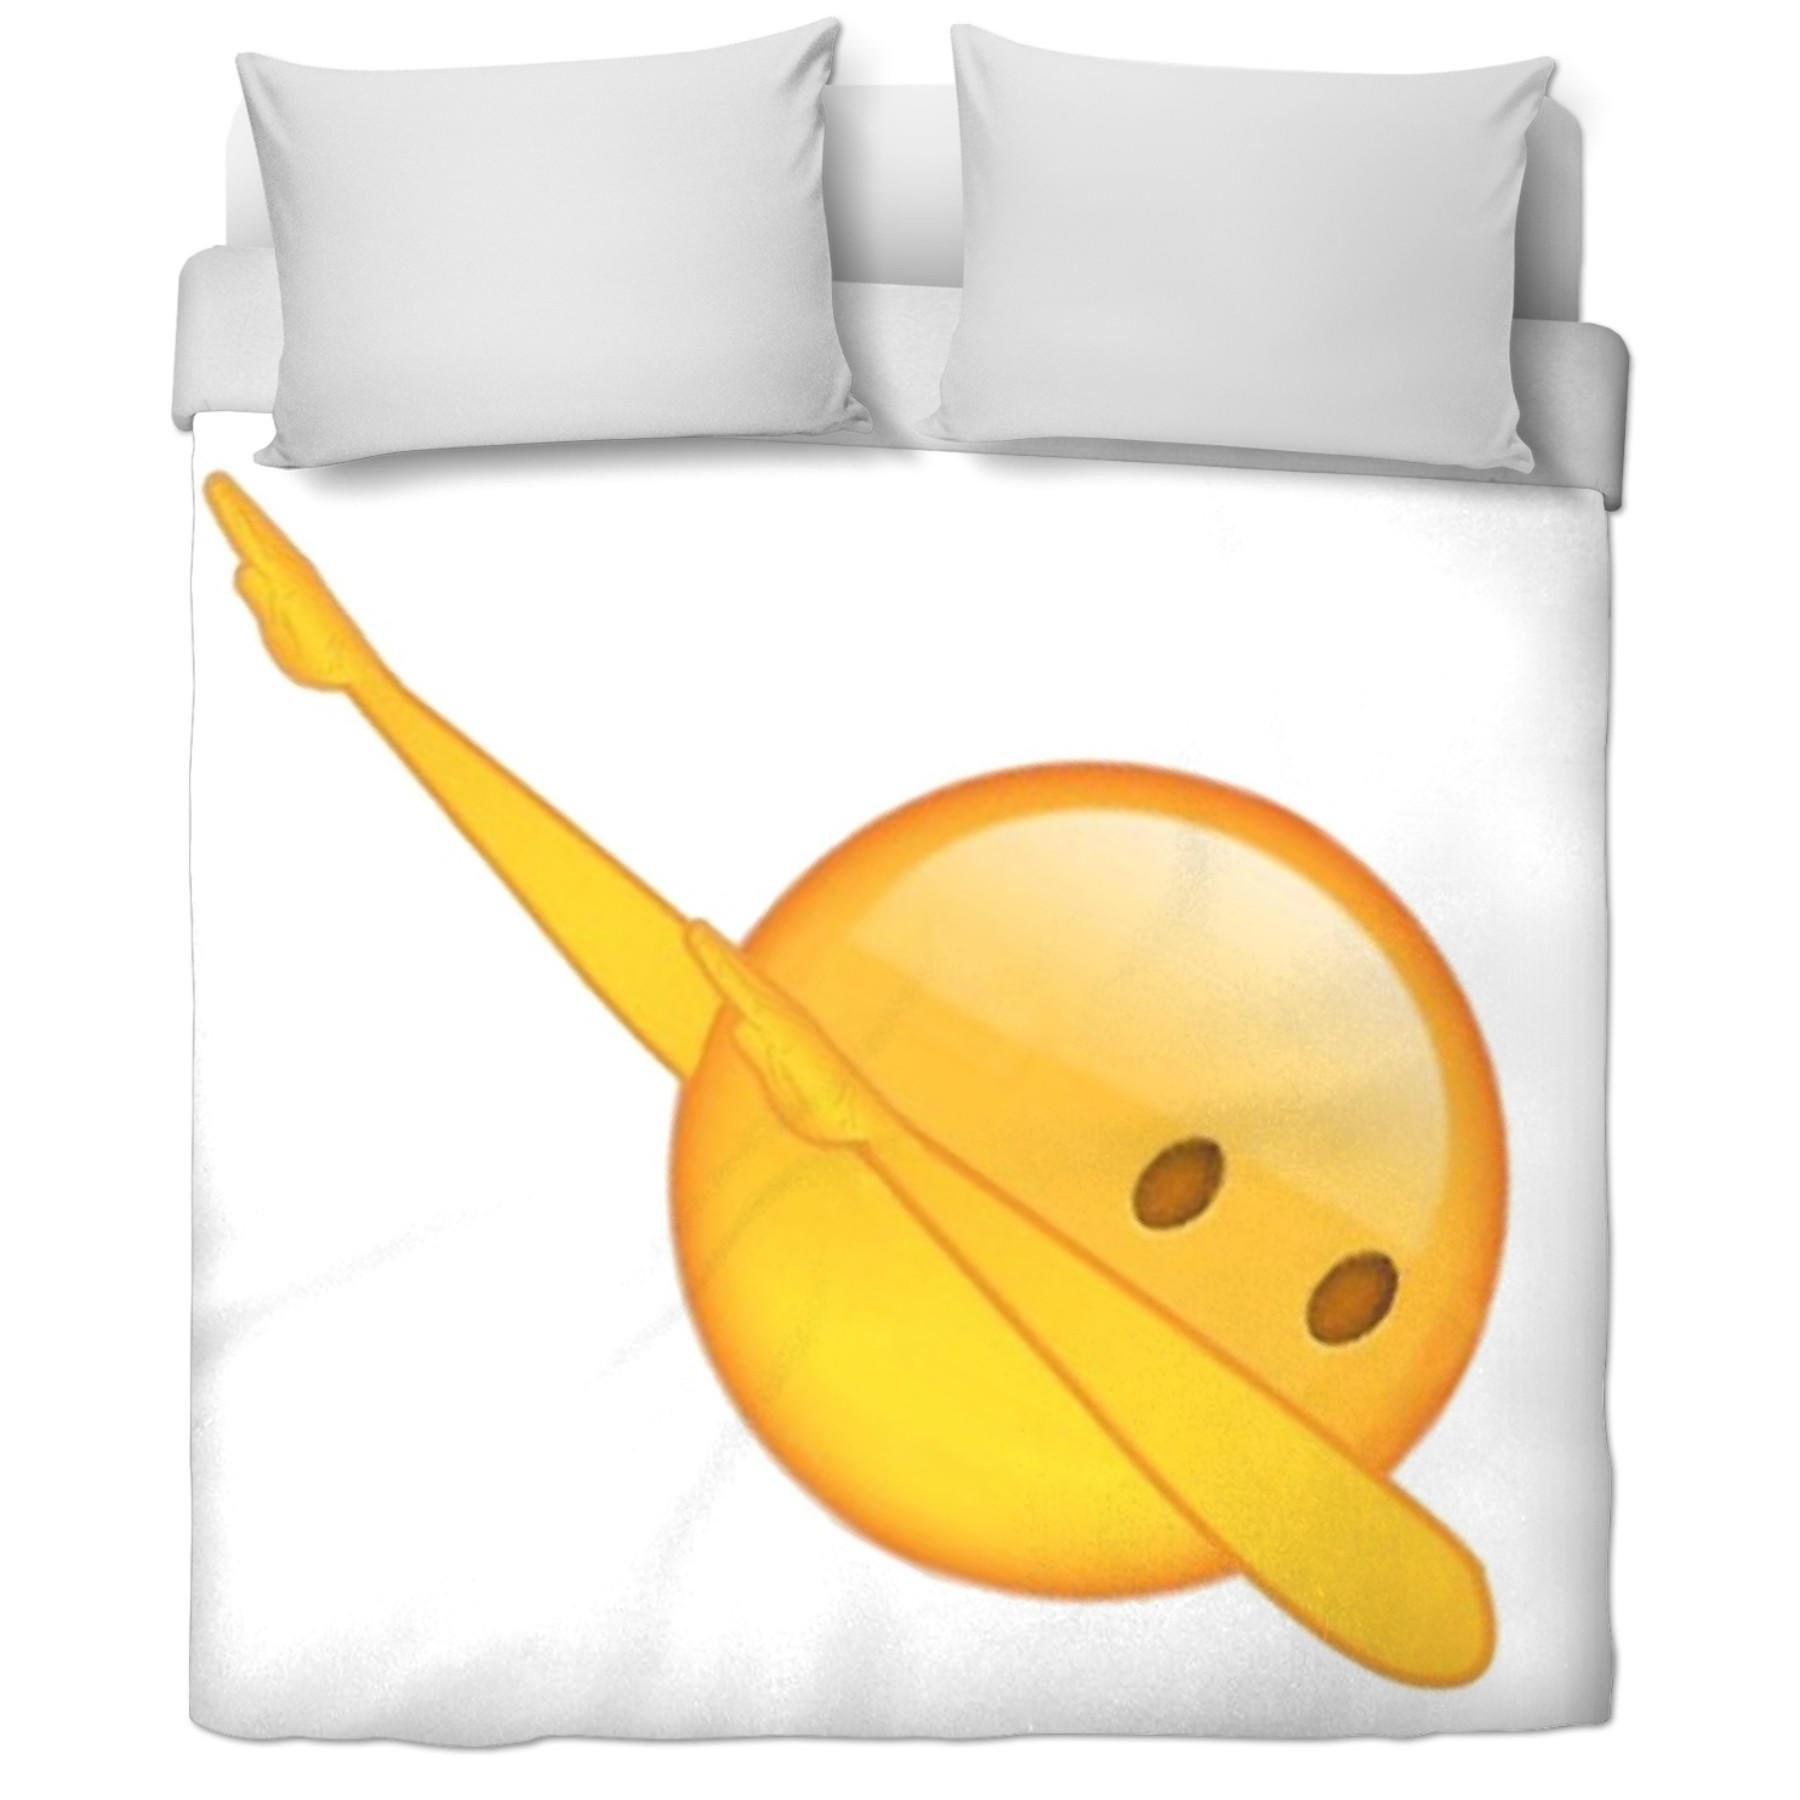 Dab emoji from rageon things i want as gifts